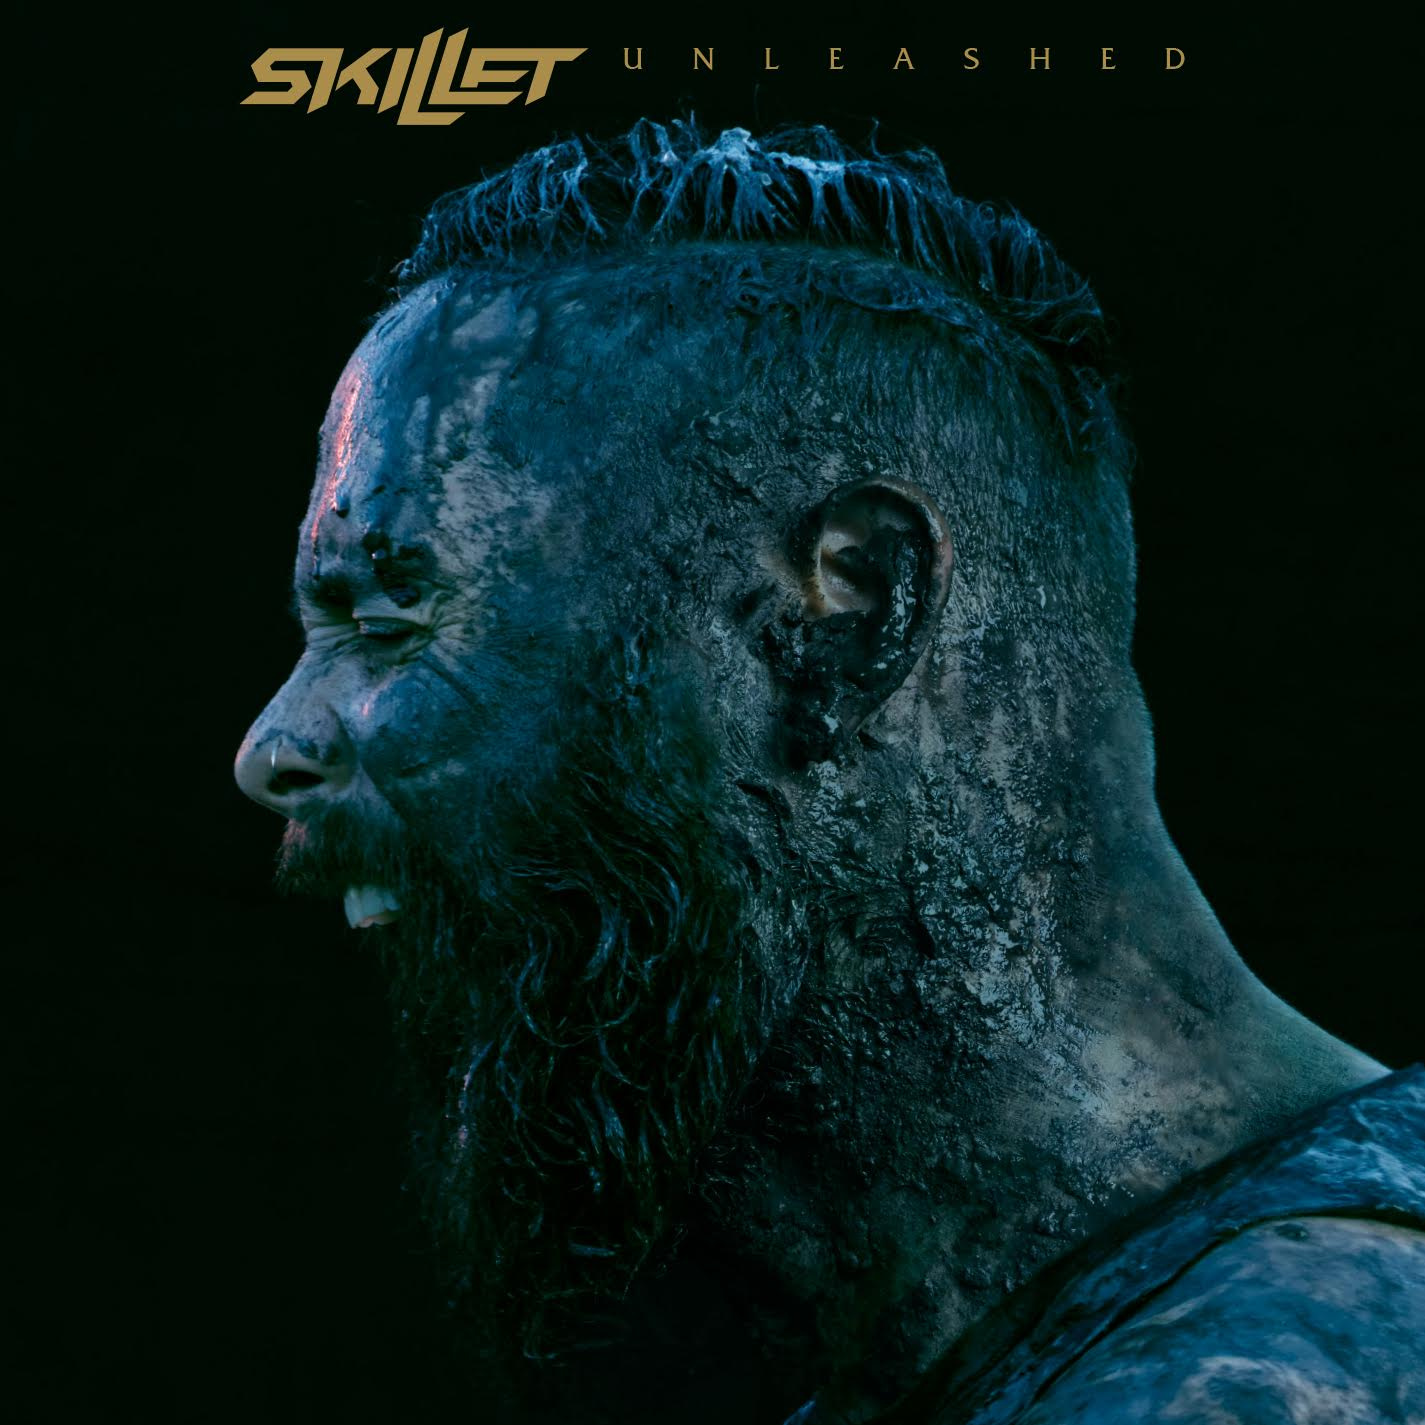 skillet-unleashed-cover.jpg